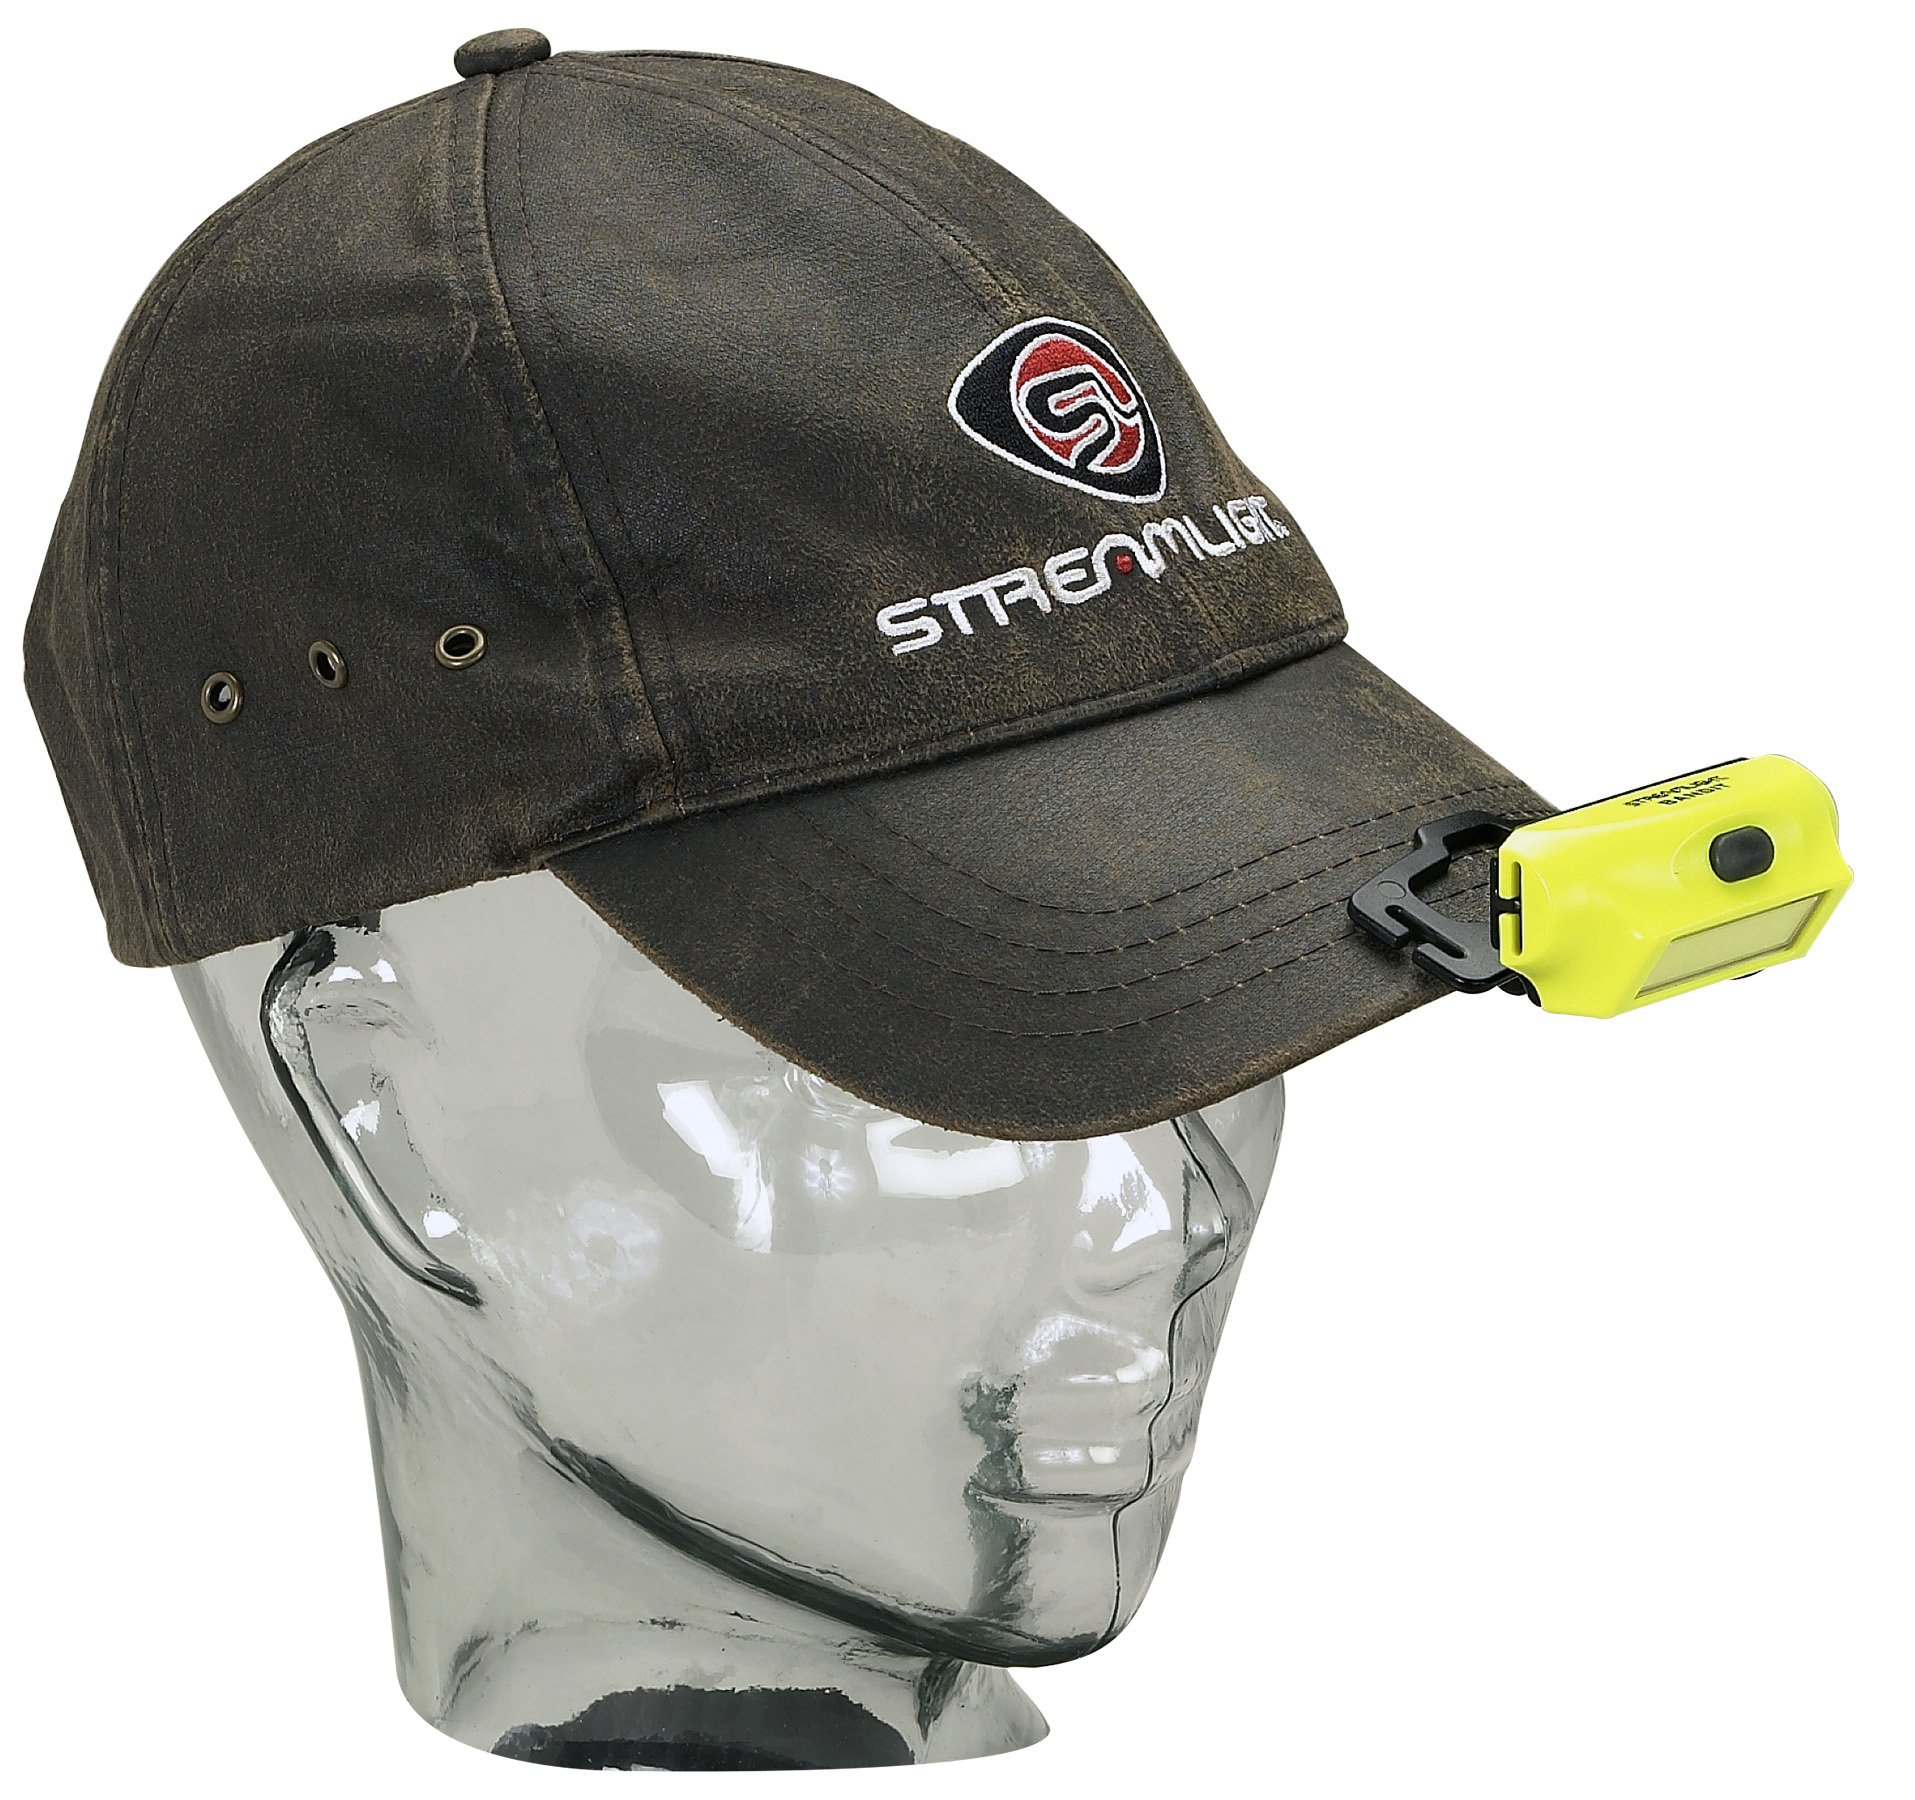 Streamlight 61702 Bandit - includes headstrap, hat clip and USB cord, Black - 180 Lumens by Streamlight (Image #5)